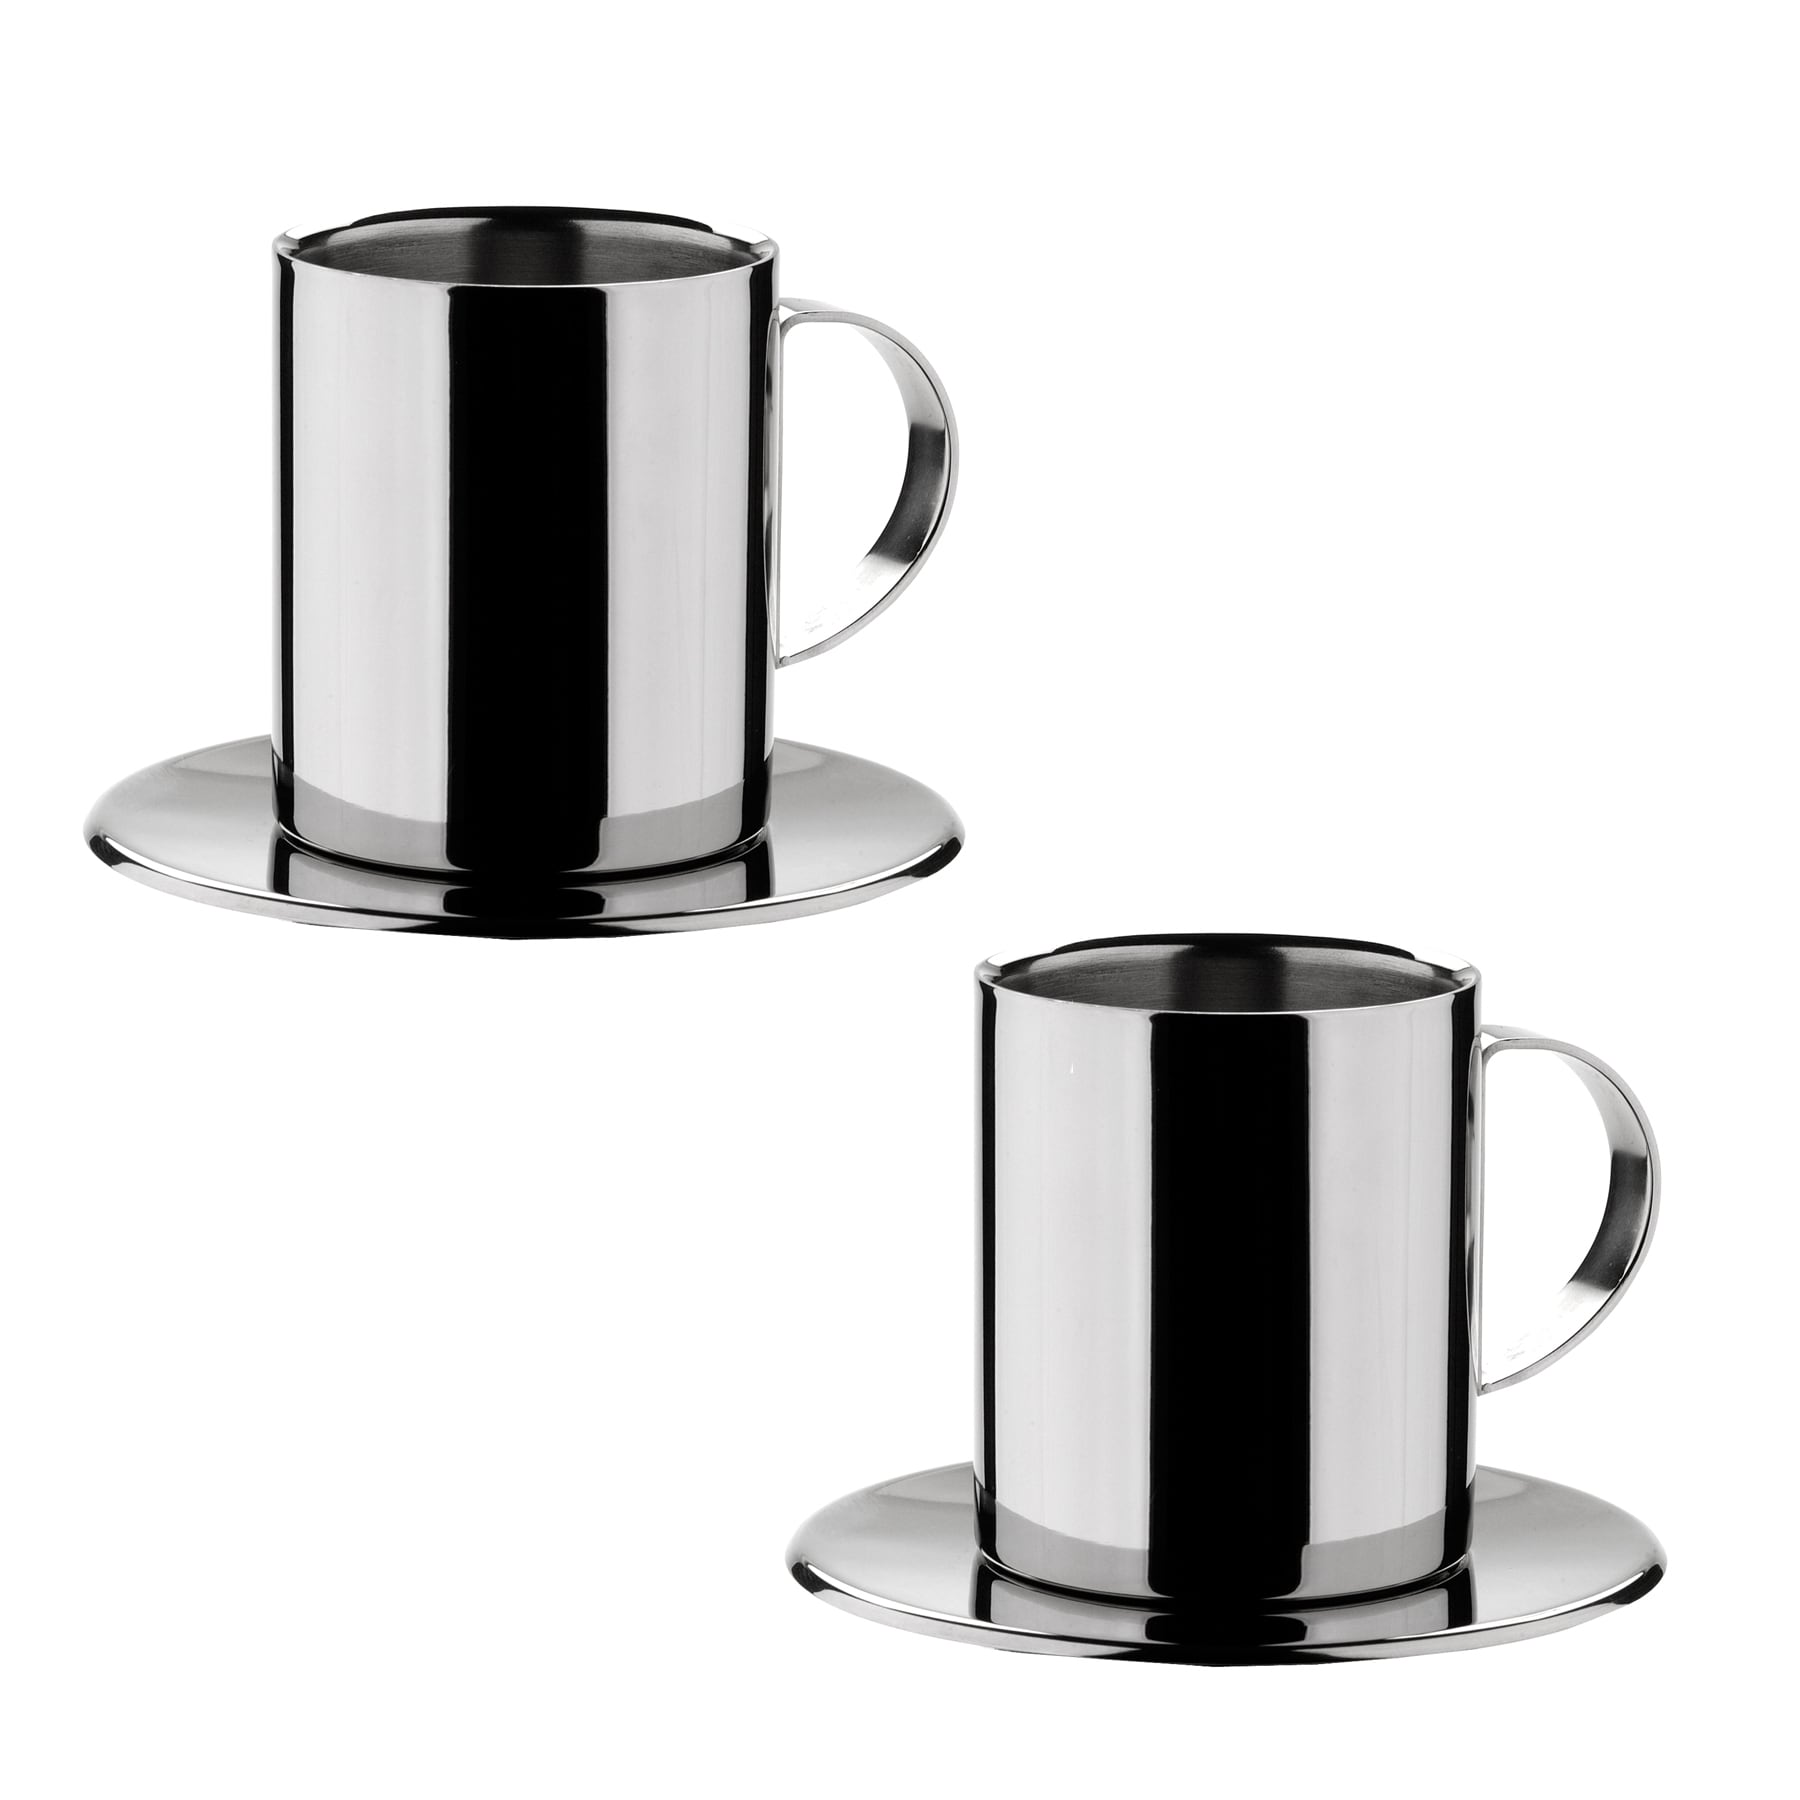 Miu France Stainless Steel Cuccino Cups Set Of 2 Free Shipping On Orders Over 45 7605243